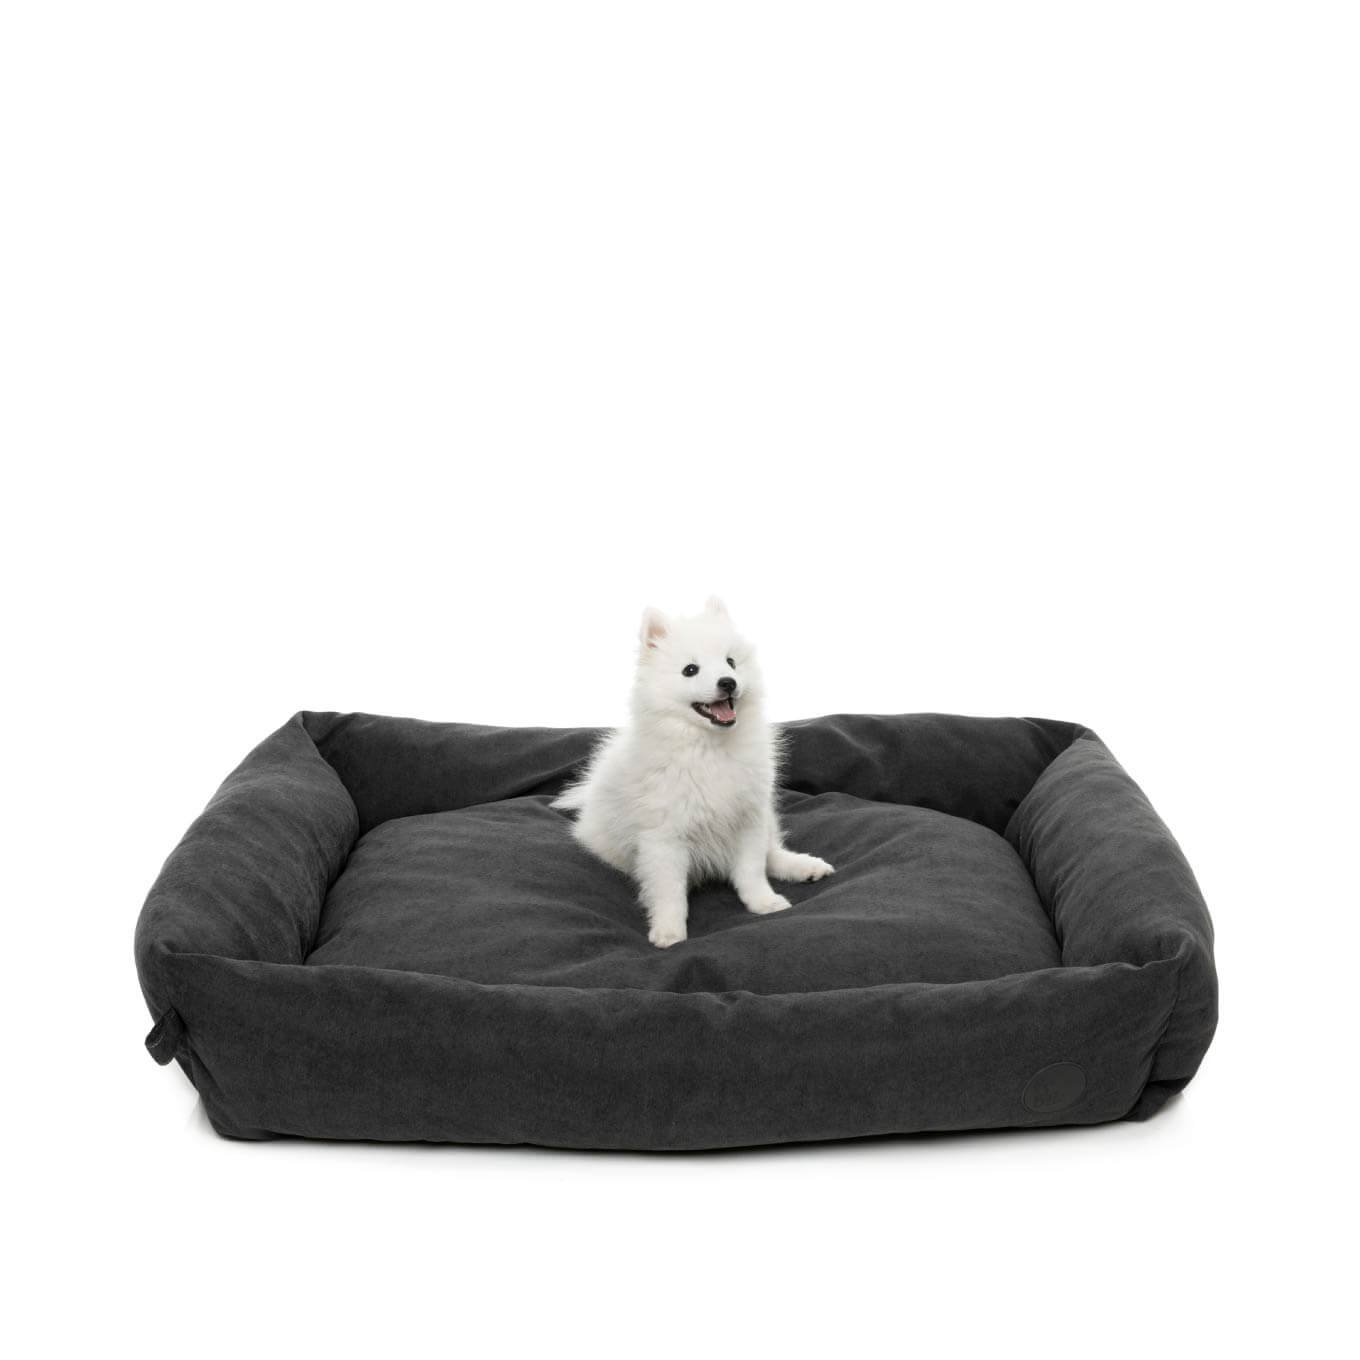 FuzzYard The Lounge Bed in Charcoal - Vanillapup Online Pet Shop